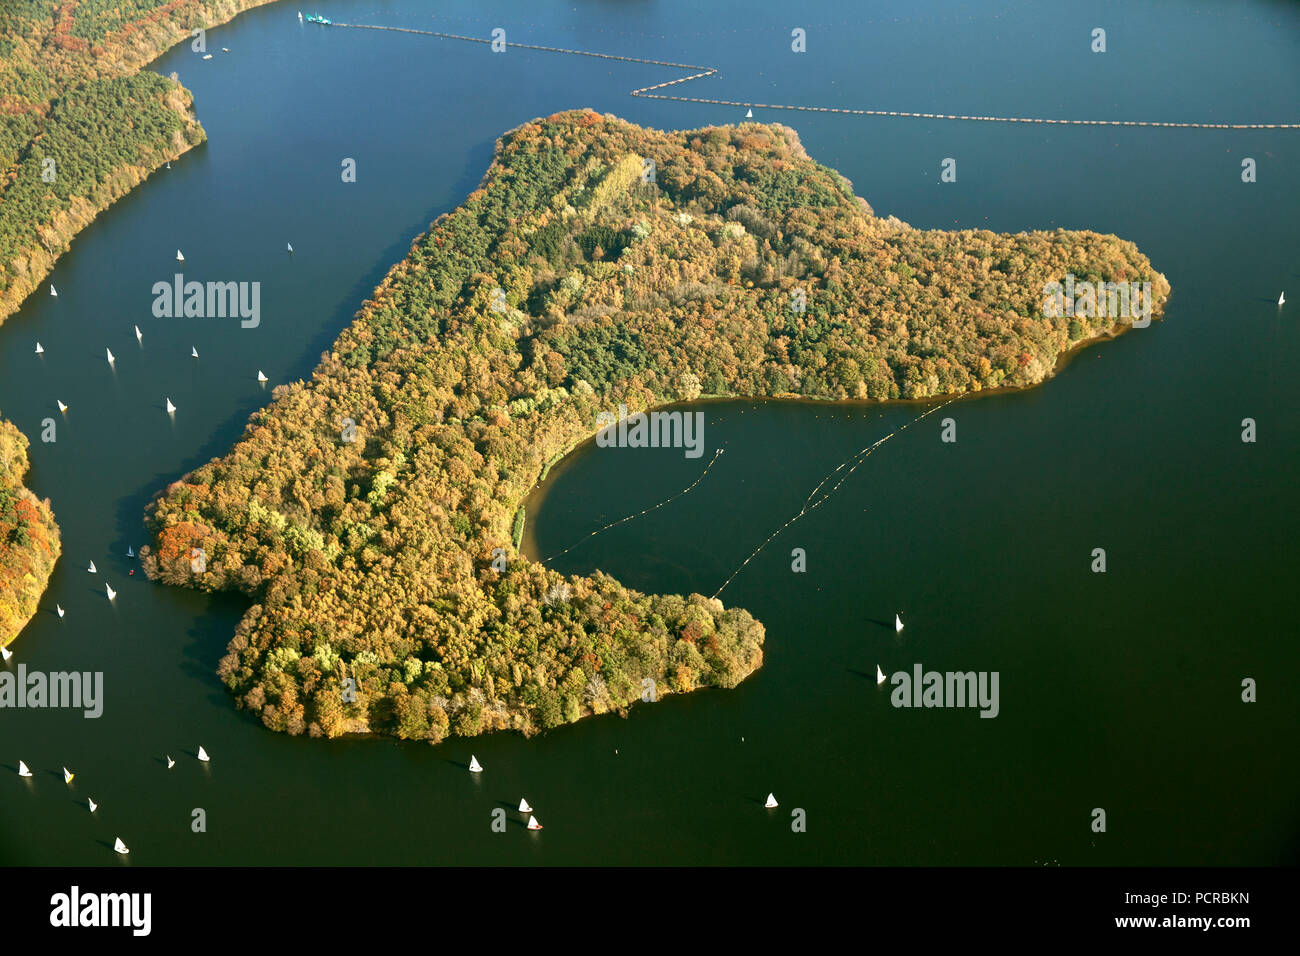 Aerial photo, island in the lake, Haltern Reservoir with sailboats, water protection area, Gelsenwasser utilities company, Haltern am See, Ruhr area, North Rhine-Westphalia, Germany, Europe - Stock Image